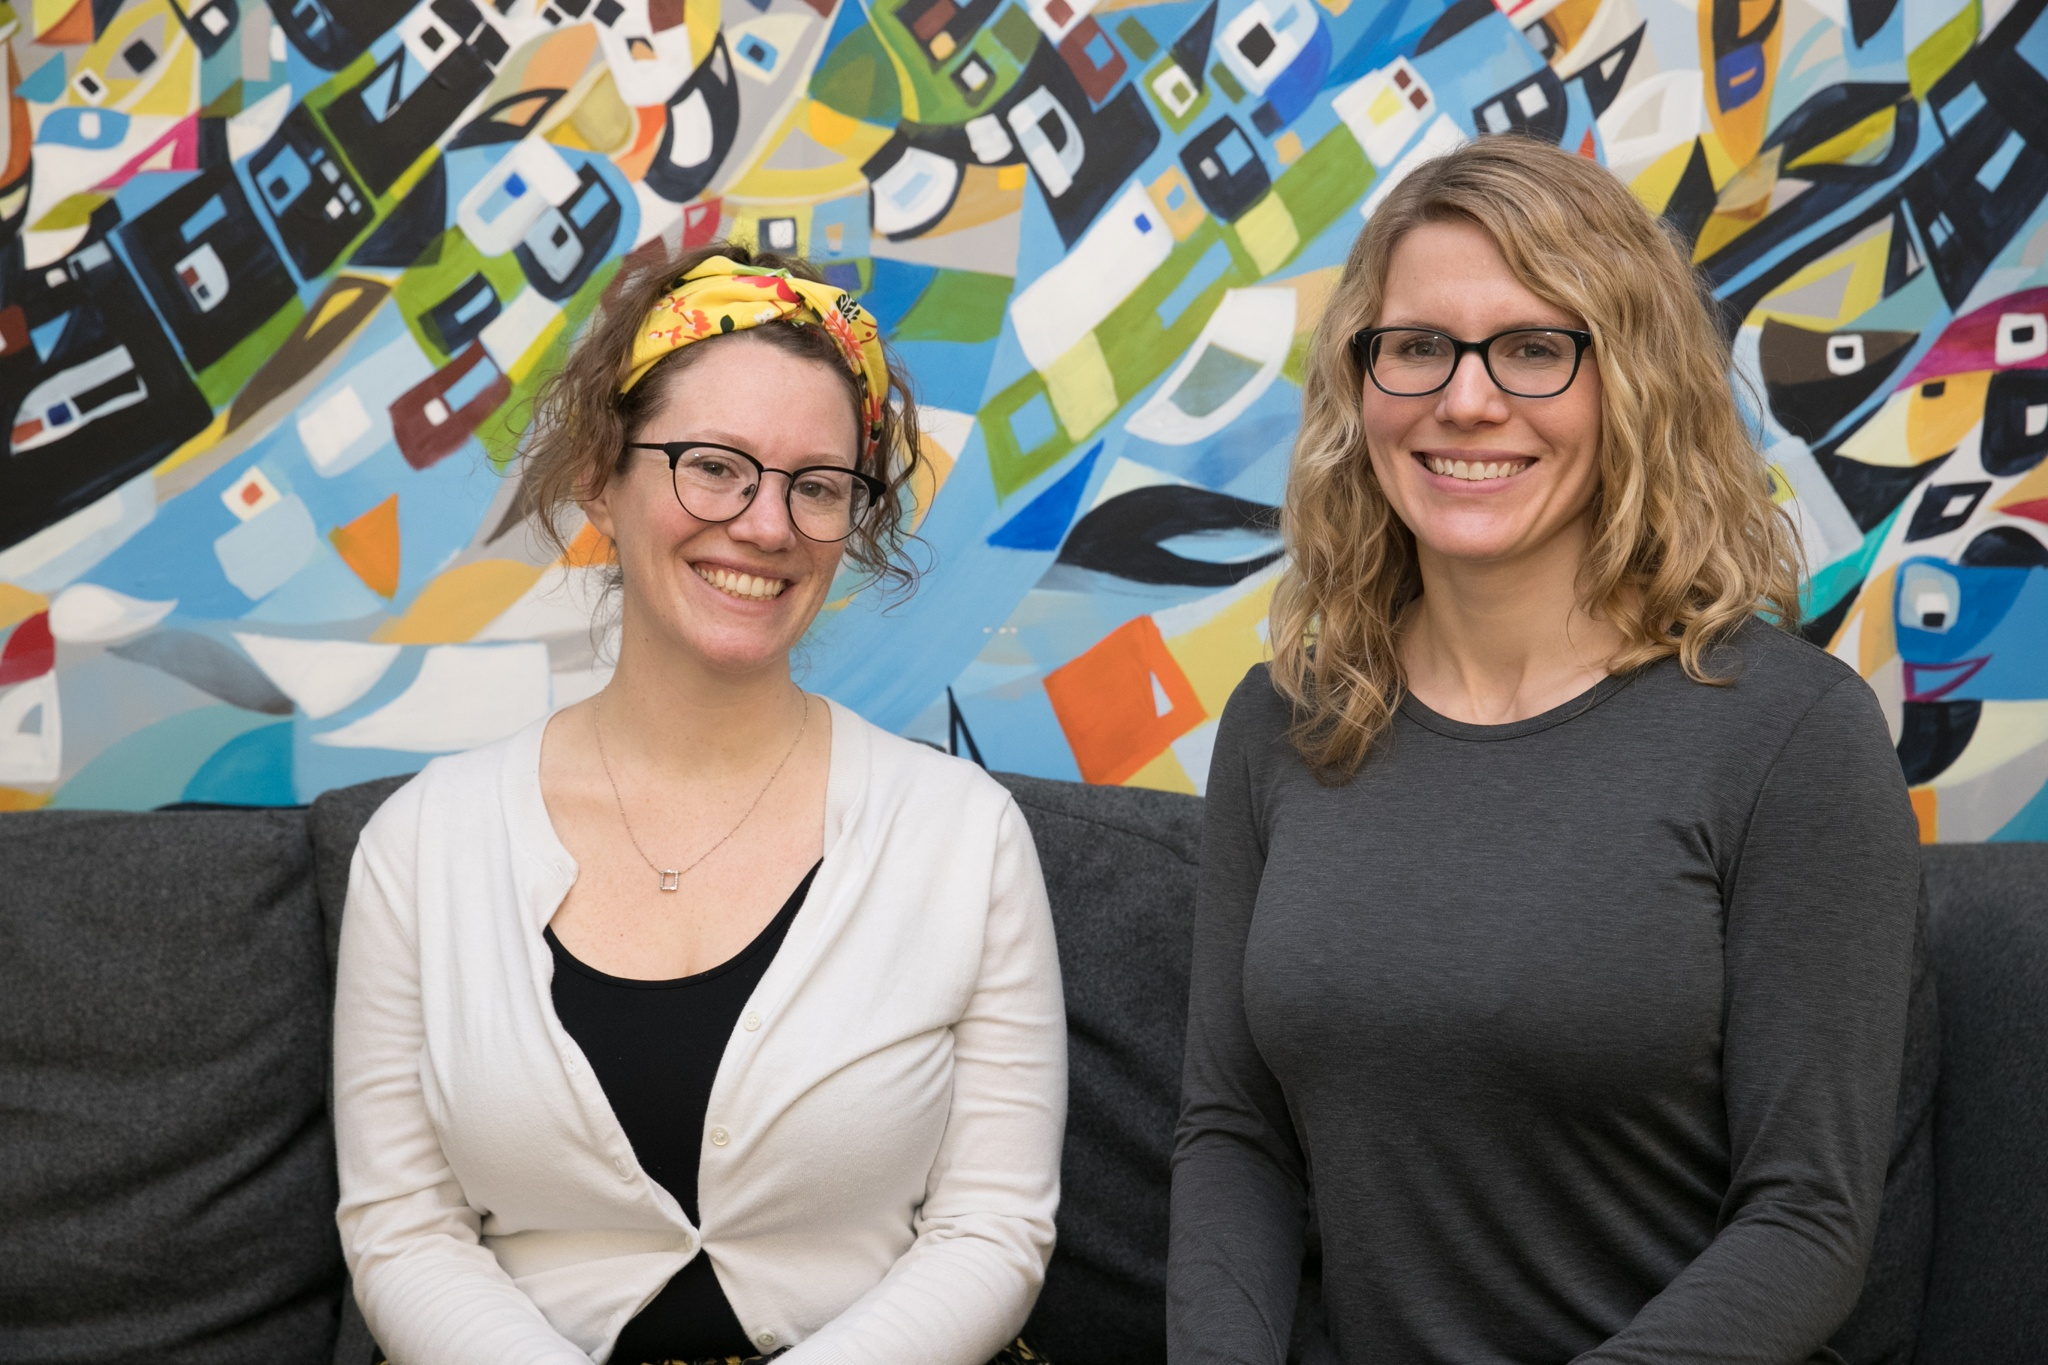 Chelsea Sprayregen and Hannah Meyer, Co-Founders, Pie for Providers